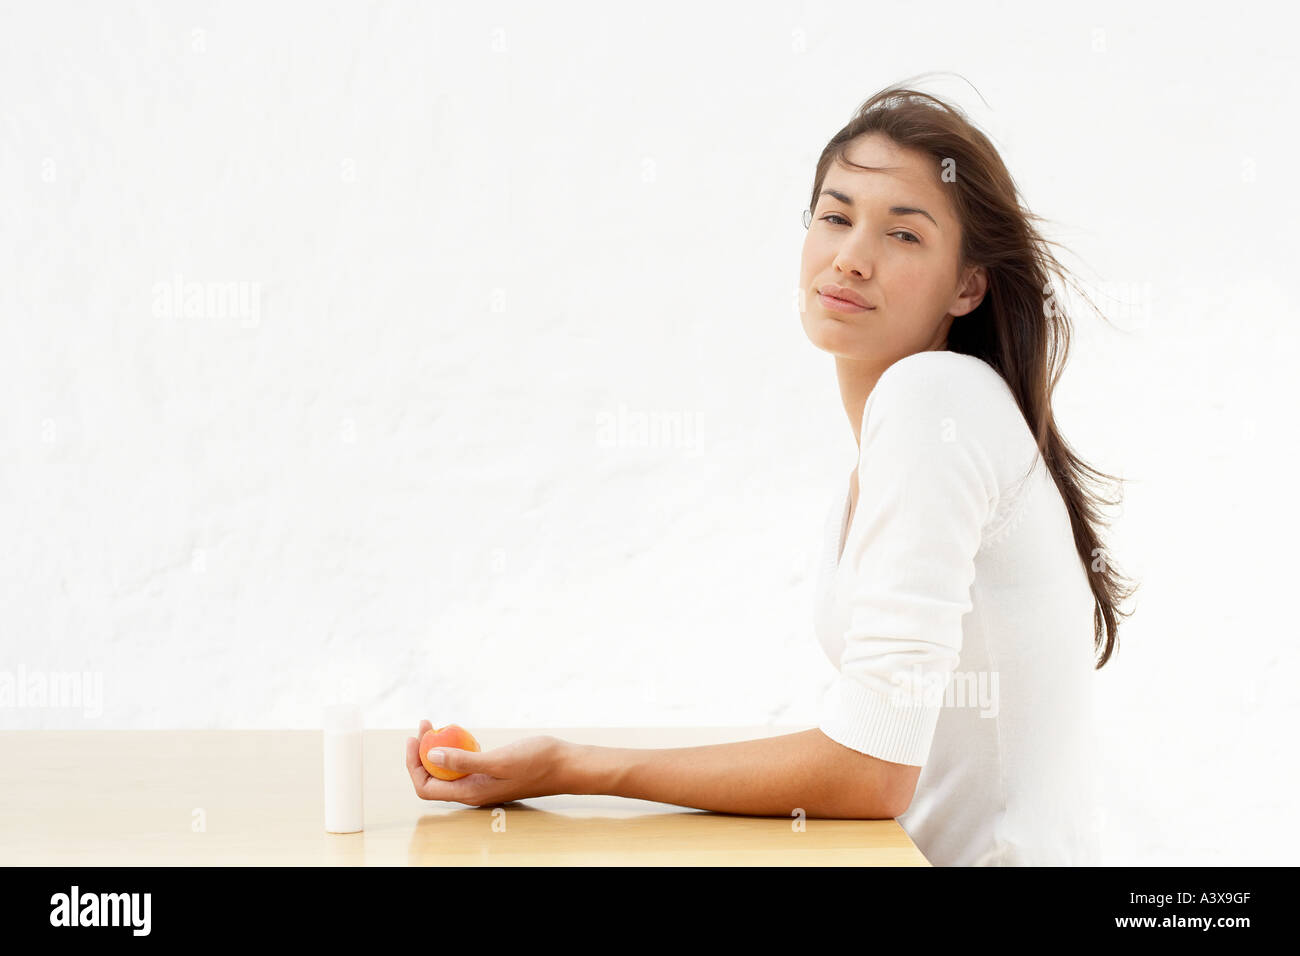 A young woman holding an apricot rests beside a bottle of spray - Stock Image